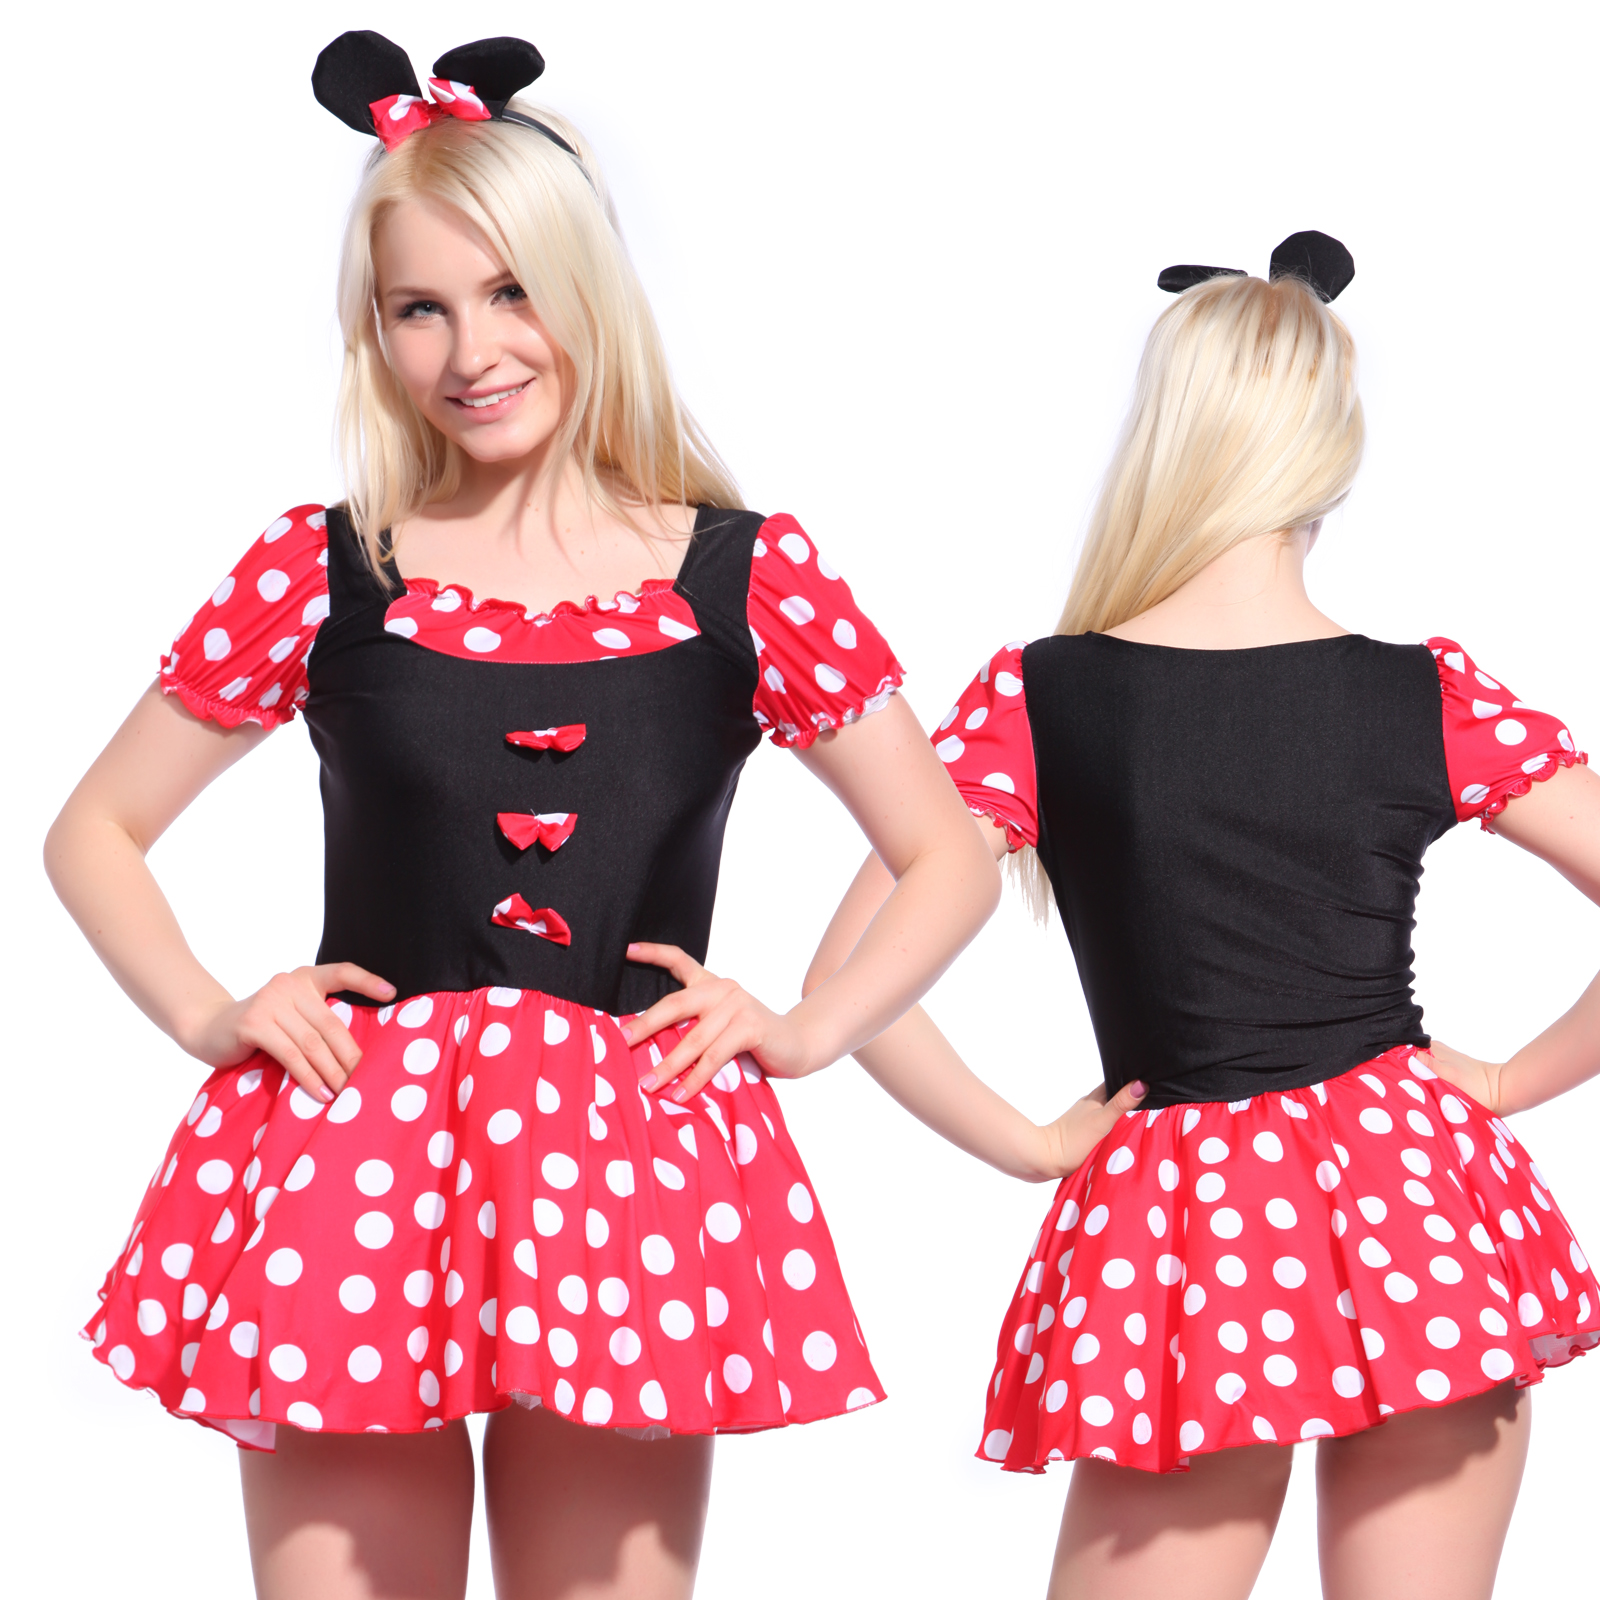 damenkost m minnie mouse prinzessin maid damen kost m verkleidung f r fasching ebay. Black Bedroom Furniture Sets. Home Design Ideas